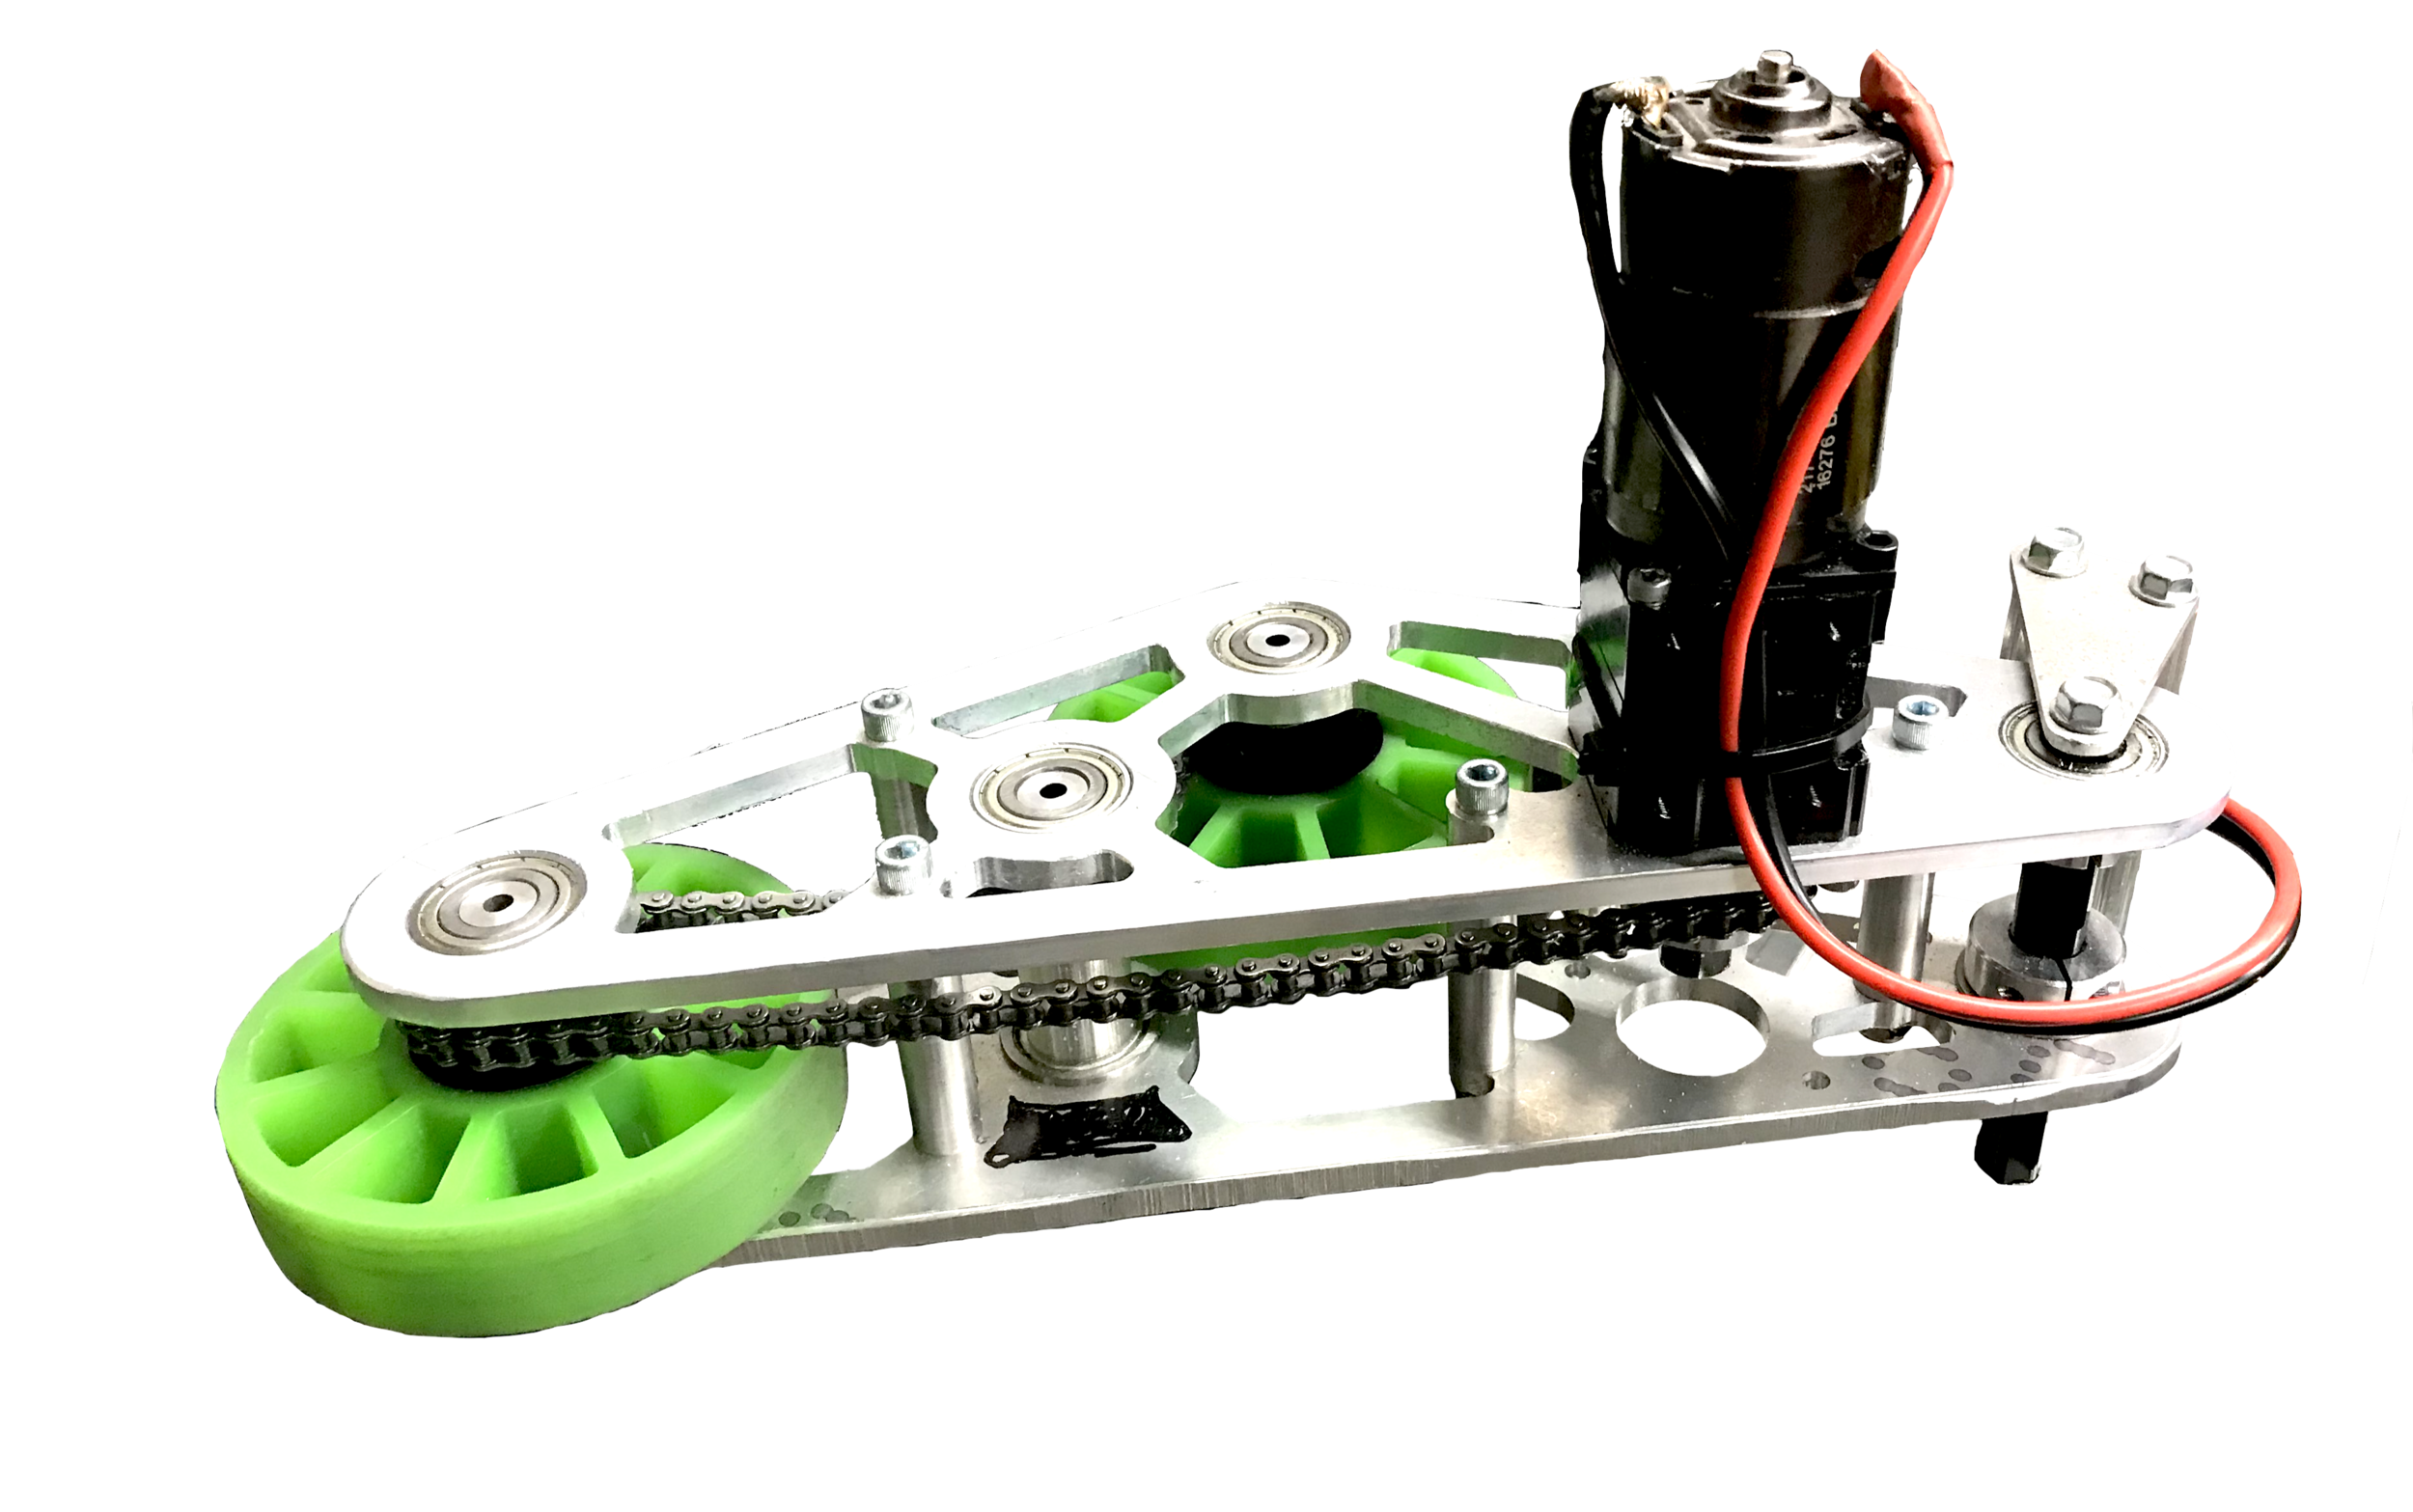 The Intake - Designed by our members, this intake system serves to wheel in boxes on the field in any orientation, and toss them a short distance to insert into the Exchange Zone